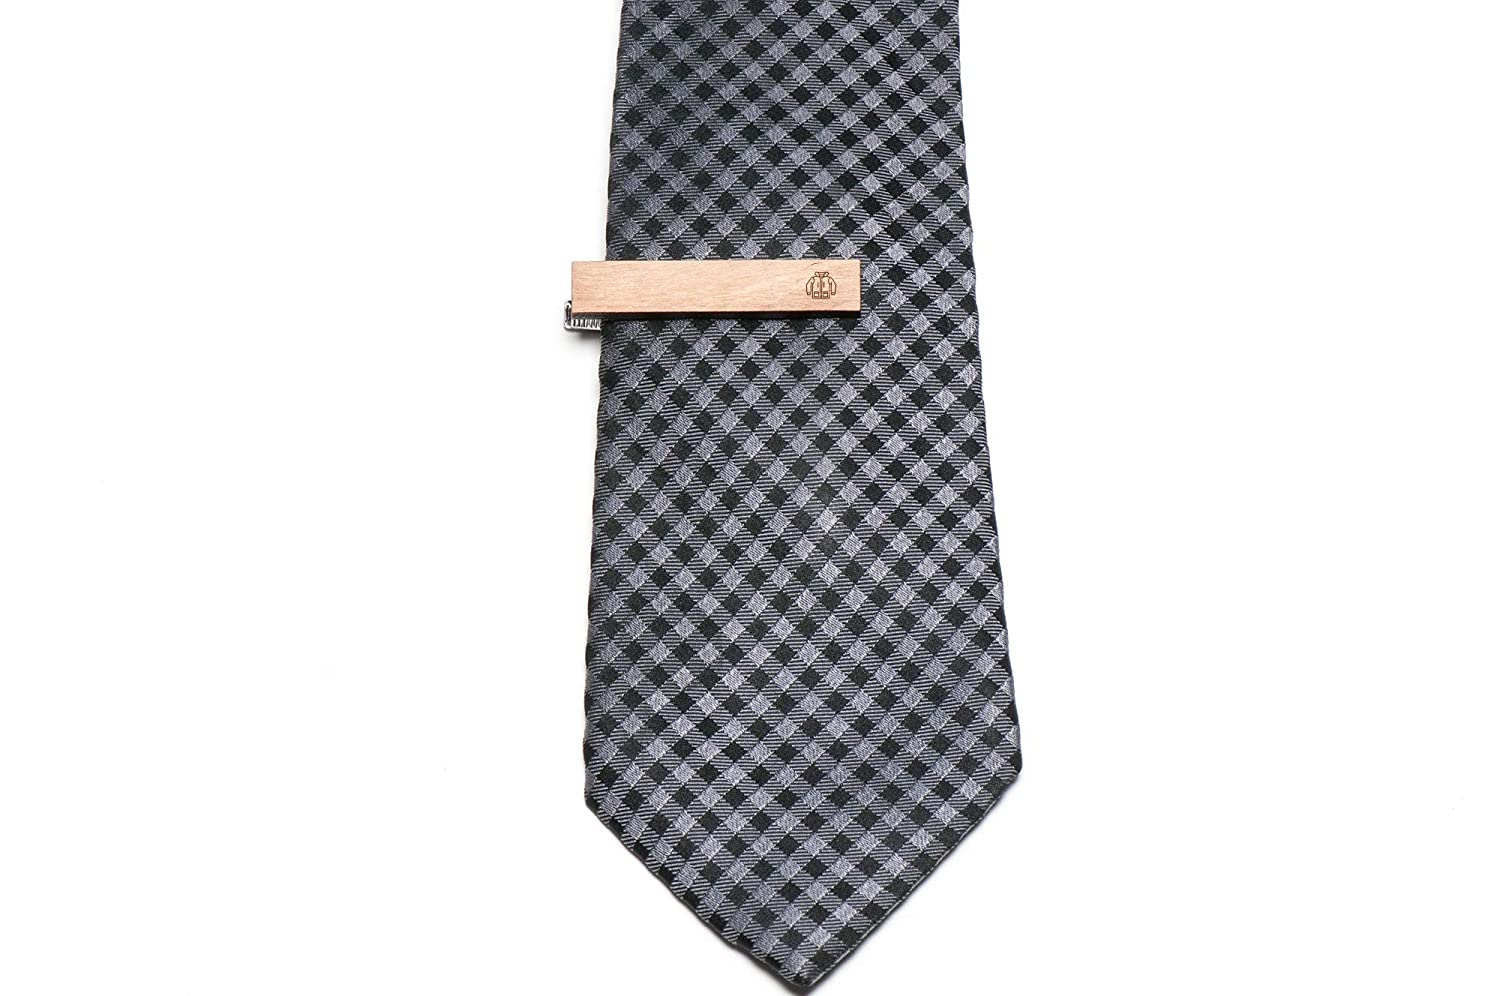 Wooden Accessories Company Wooden Tie Clips with Laser Engraved Winter Jacket Design Cherry Wood Tie Bar Engraved in The USA